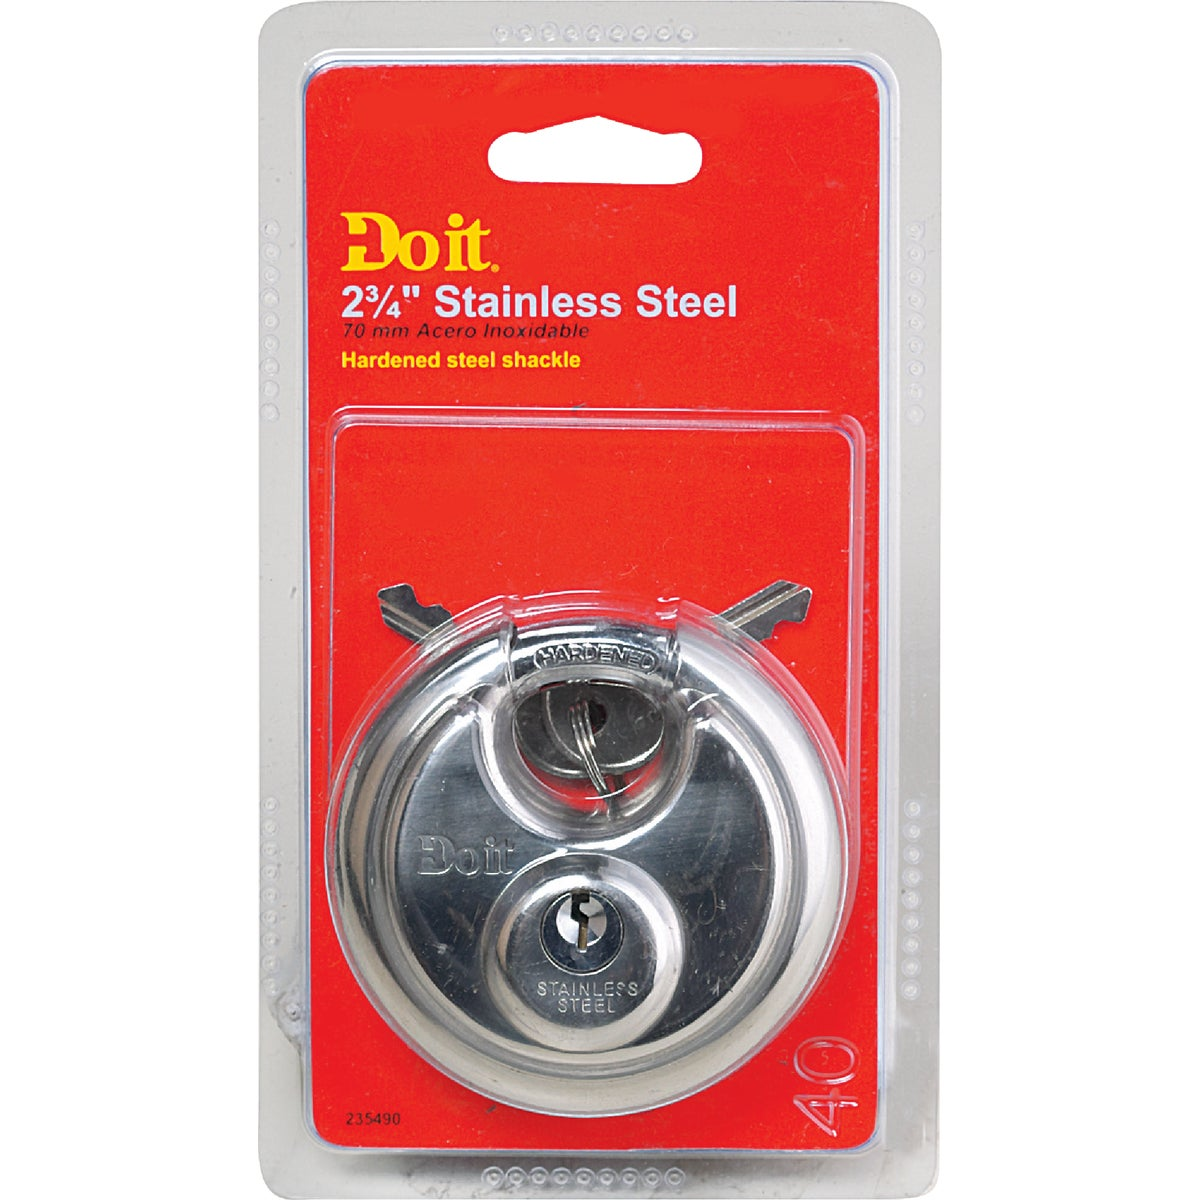 ROUND DISCUS PADLOCK - 1870DDIB by Master Lock Company